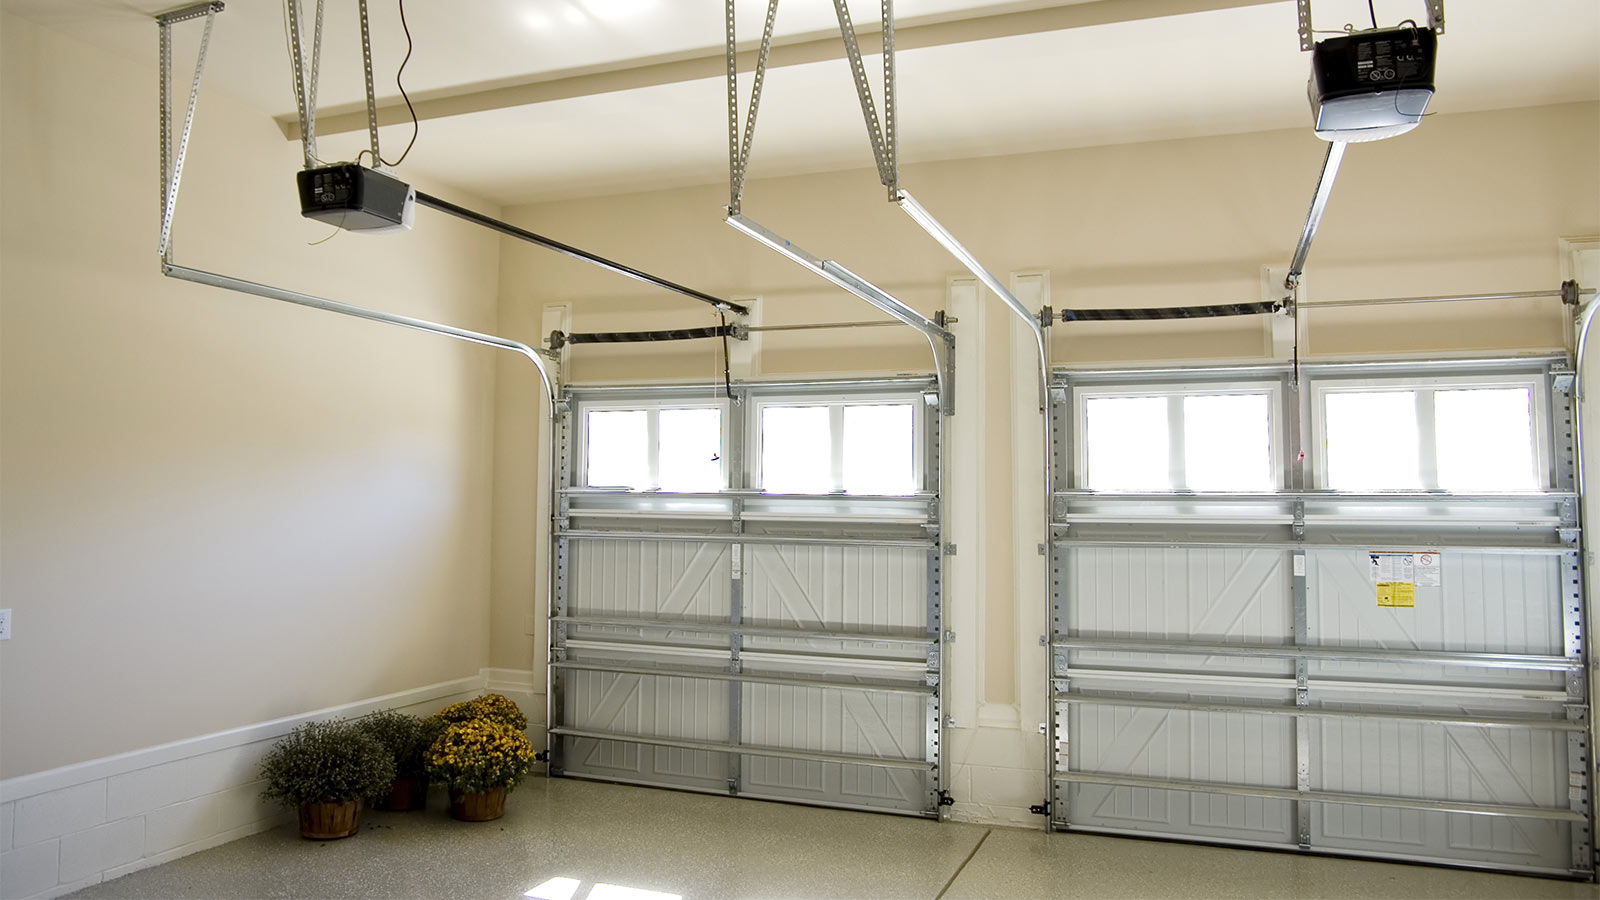 Sectional Garage Doors from Fire Shutters Chelmsford suppliers.